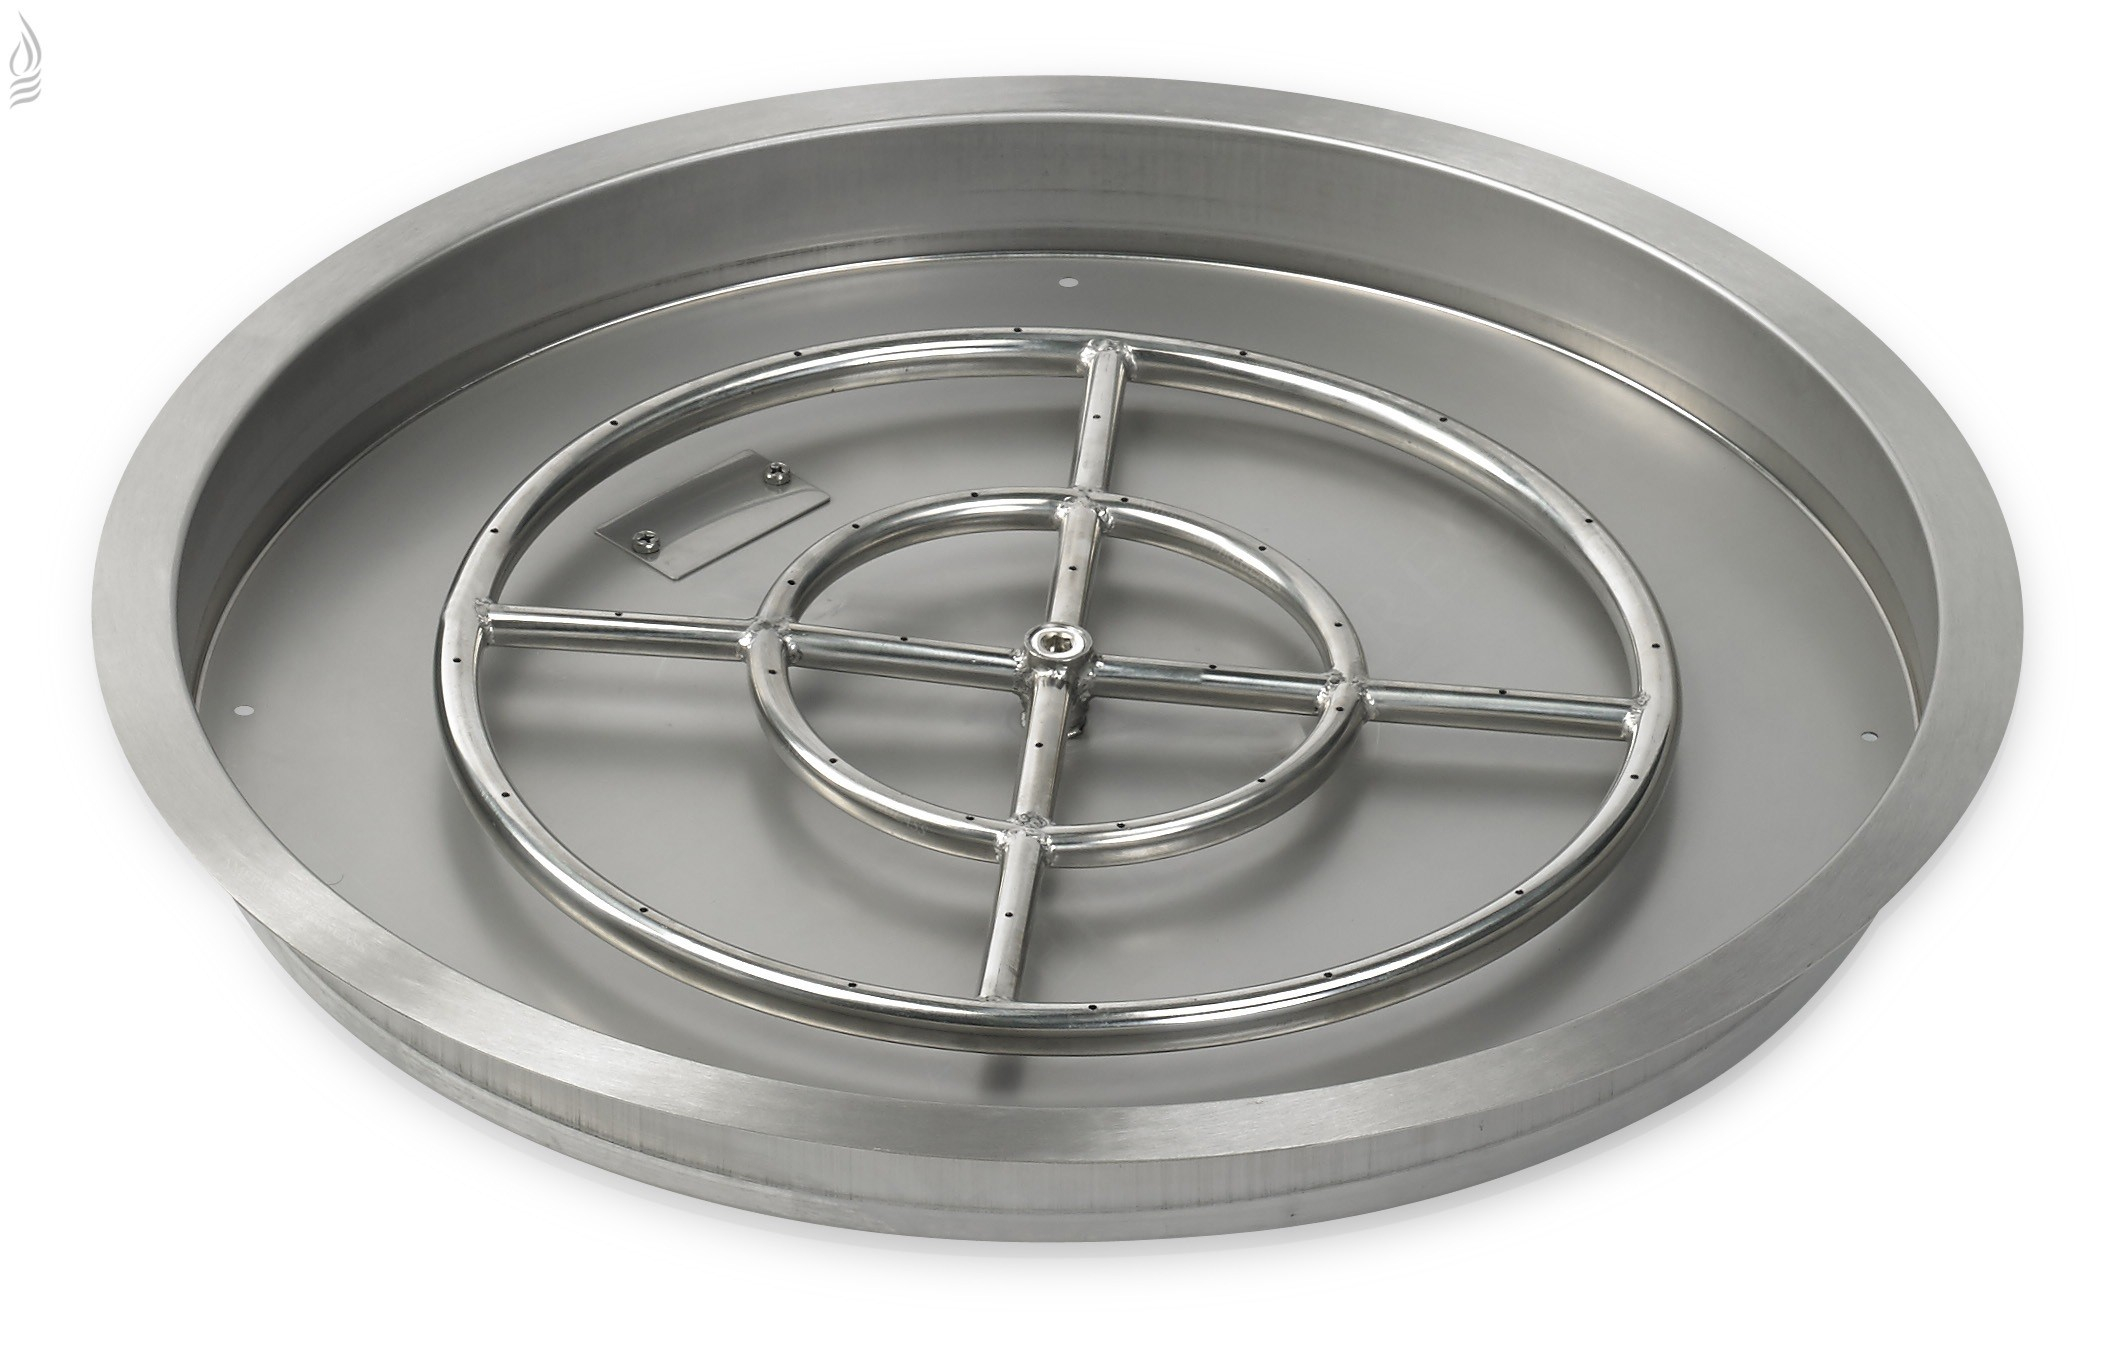 Stainless Steel Fire Pit Pan Drop In Fire Pit Allbackyardfun throughout size 2116 X 1351